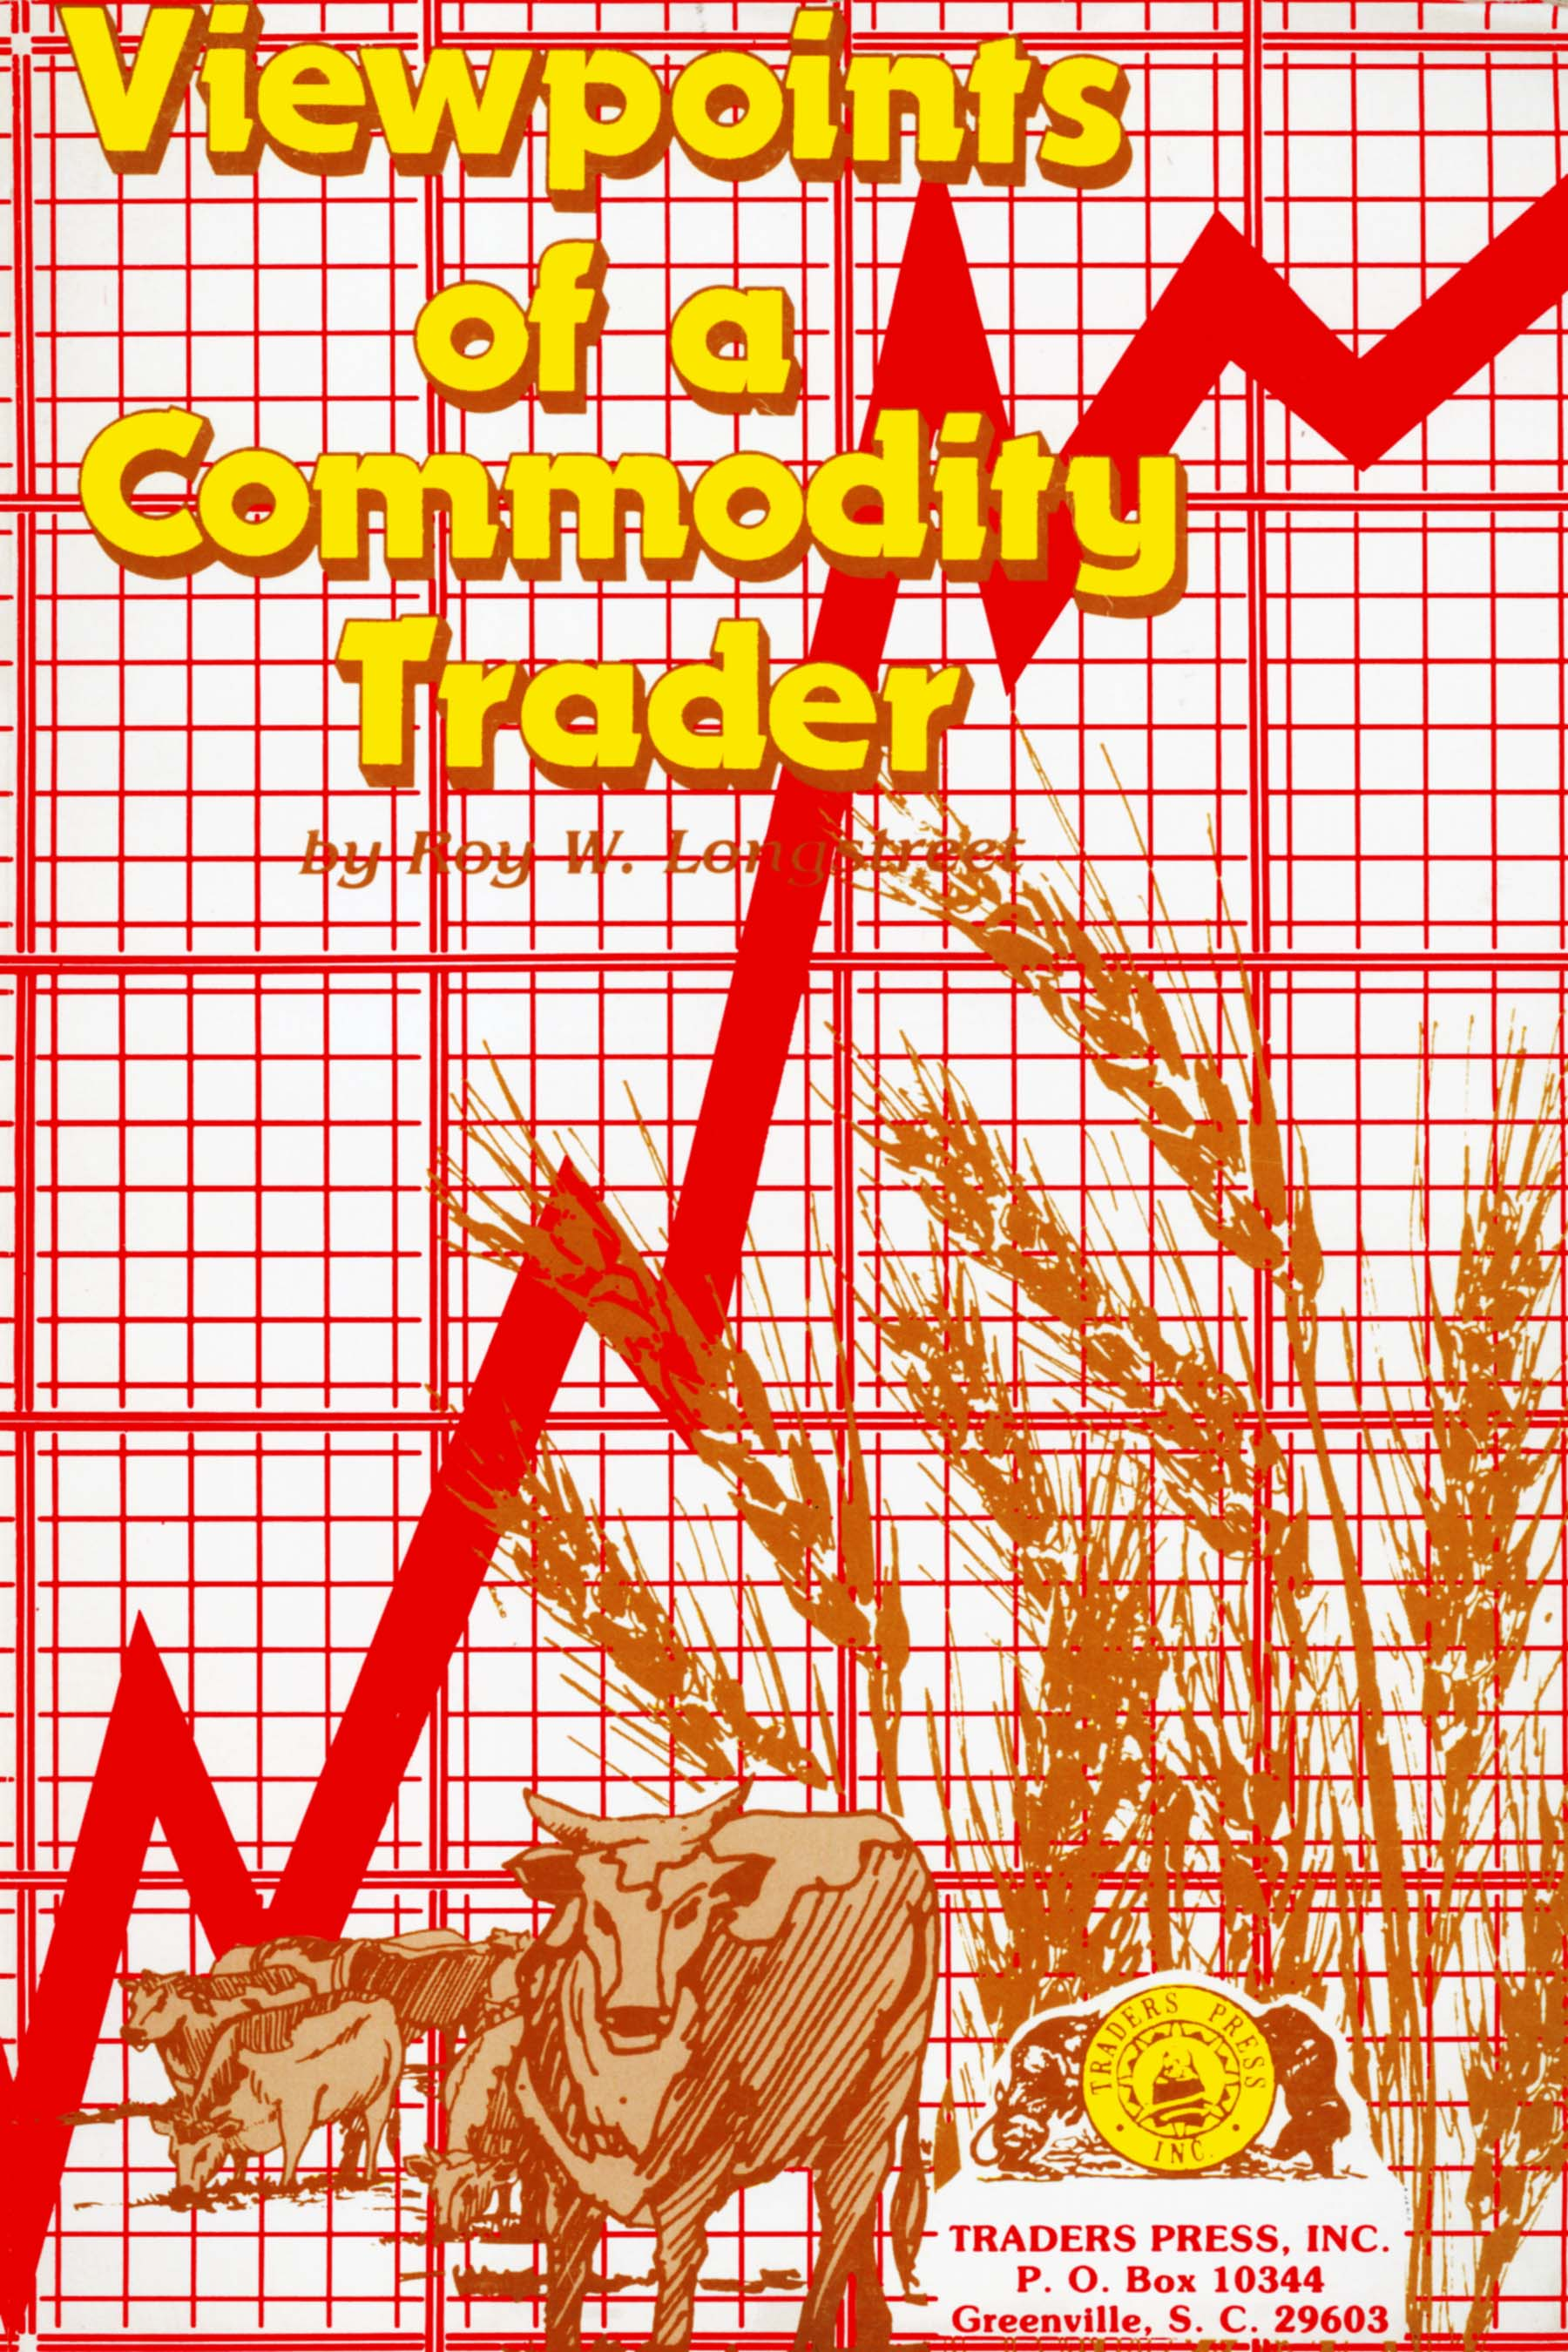 Viewpoints of a Commodity Trader